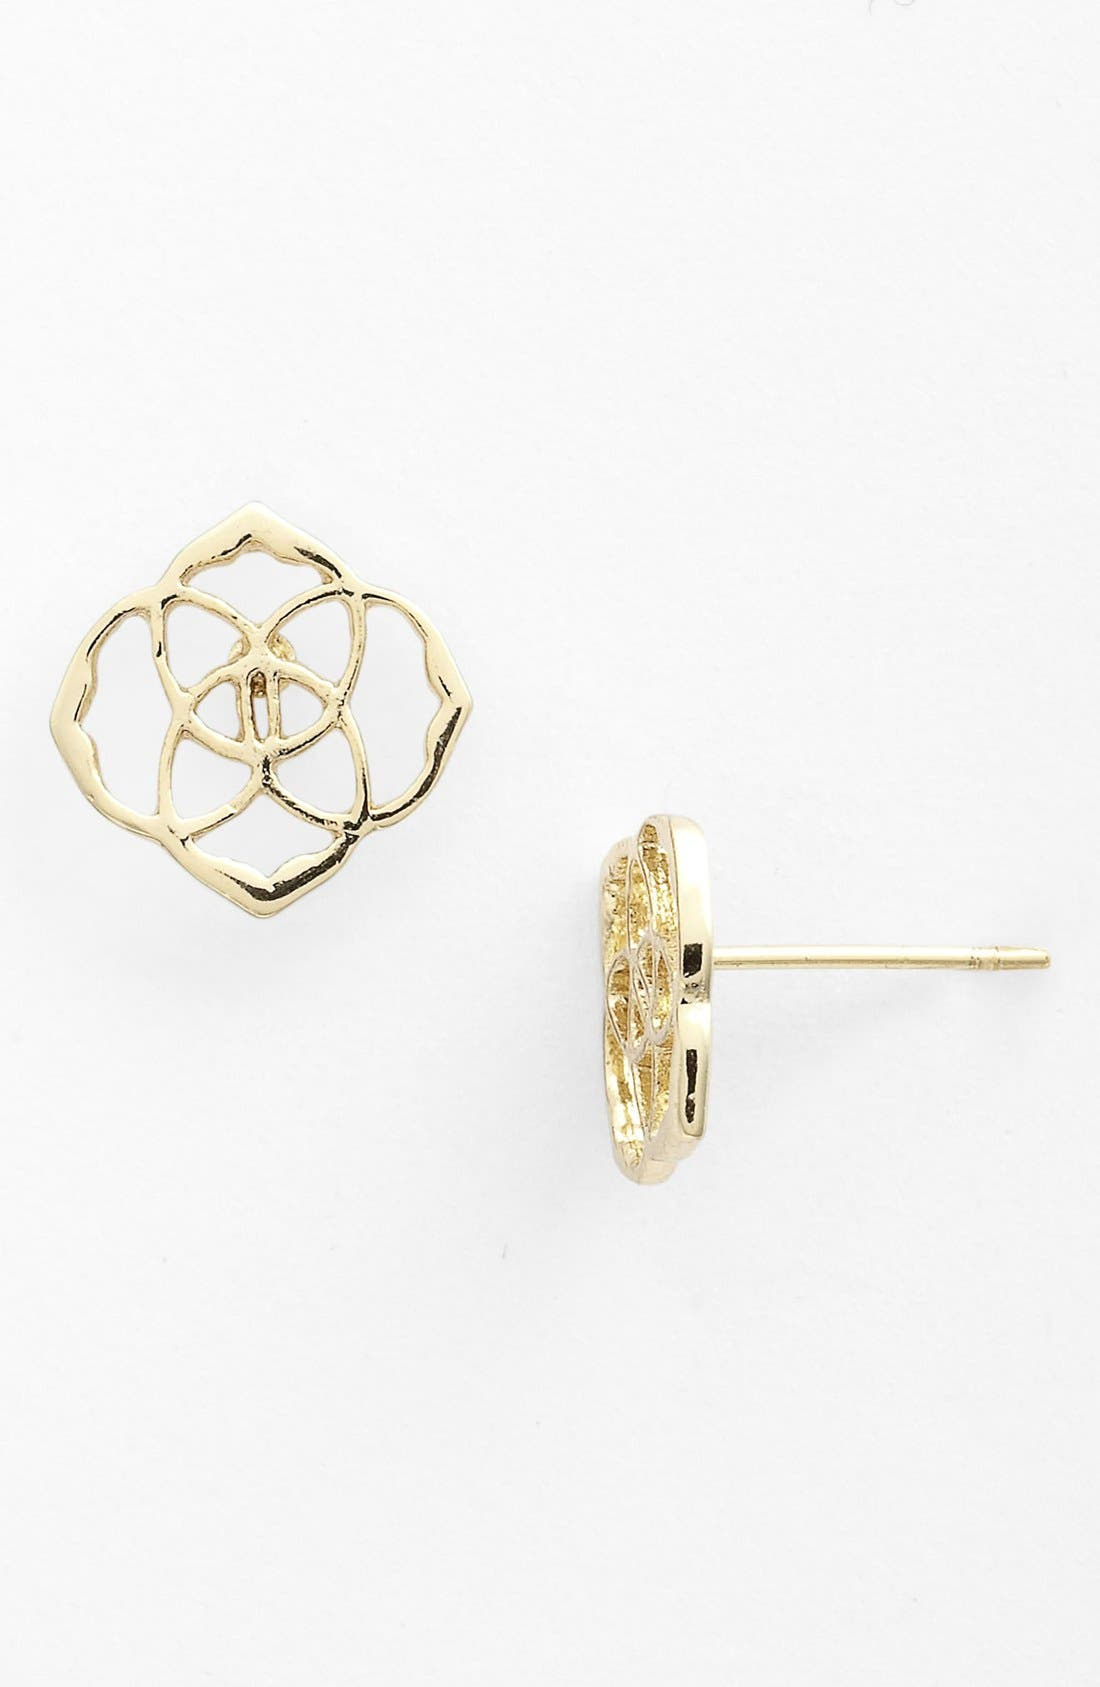 KENDRA SCOTT Dira Stud Earrings